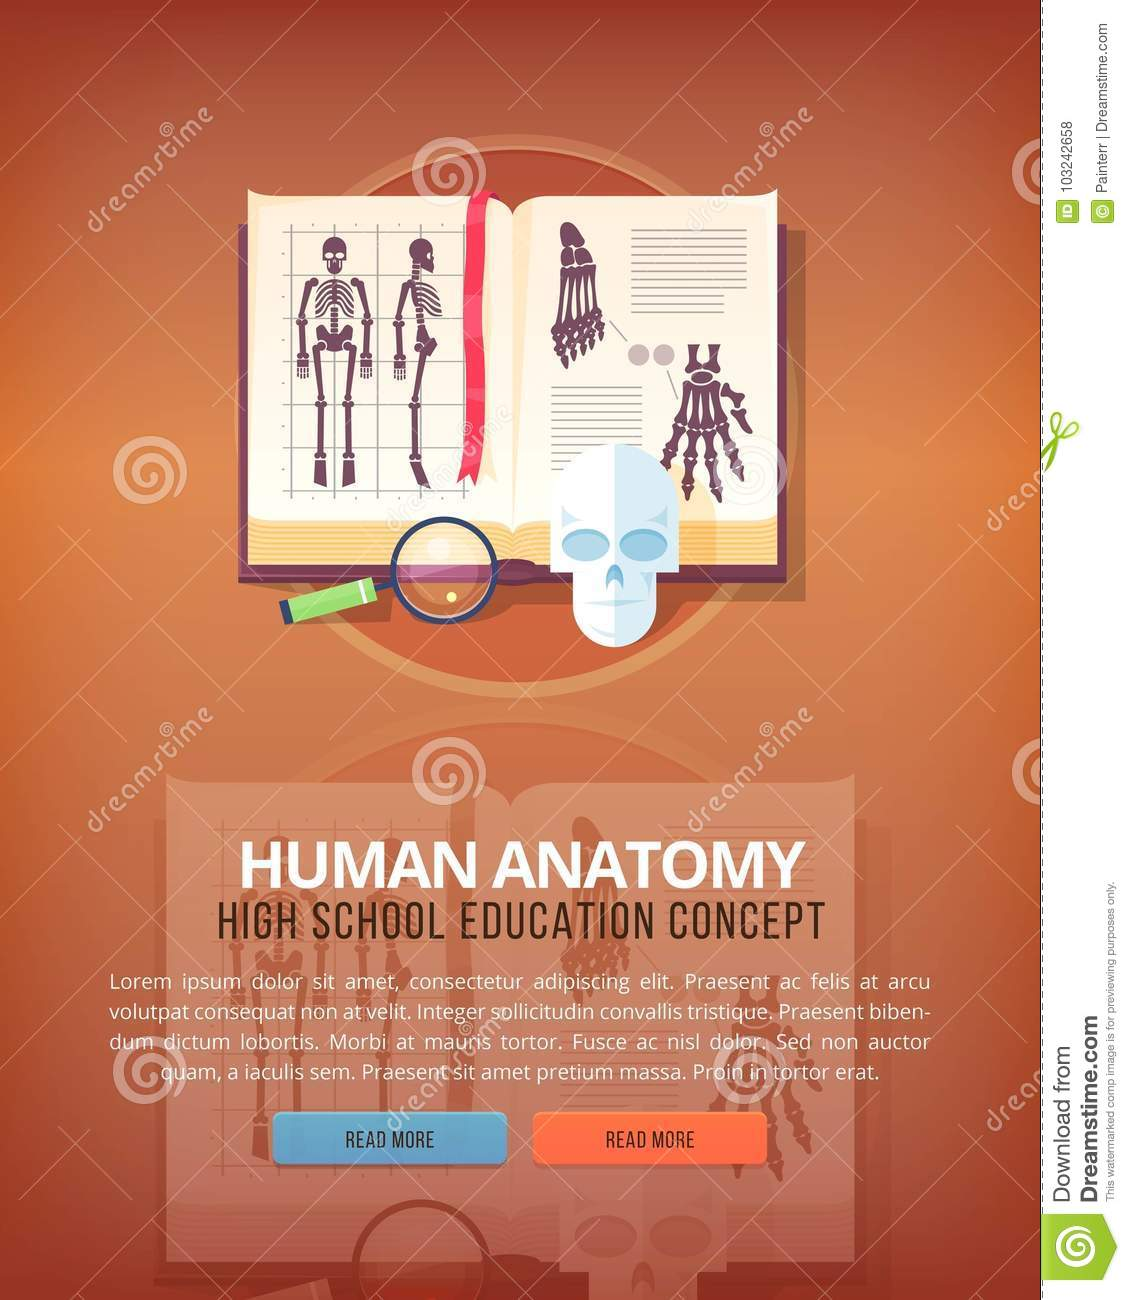 Human Anatomy Education And Science Vertical Layout Concepts Flat